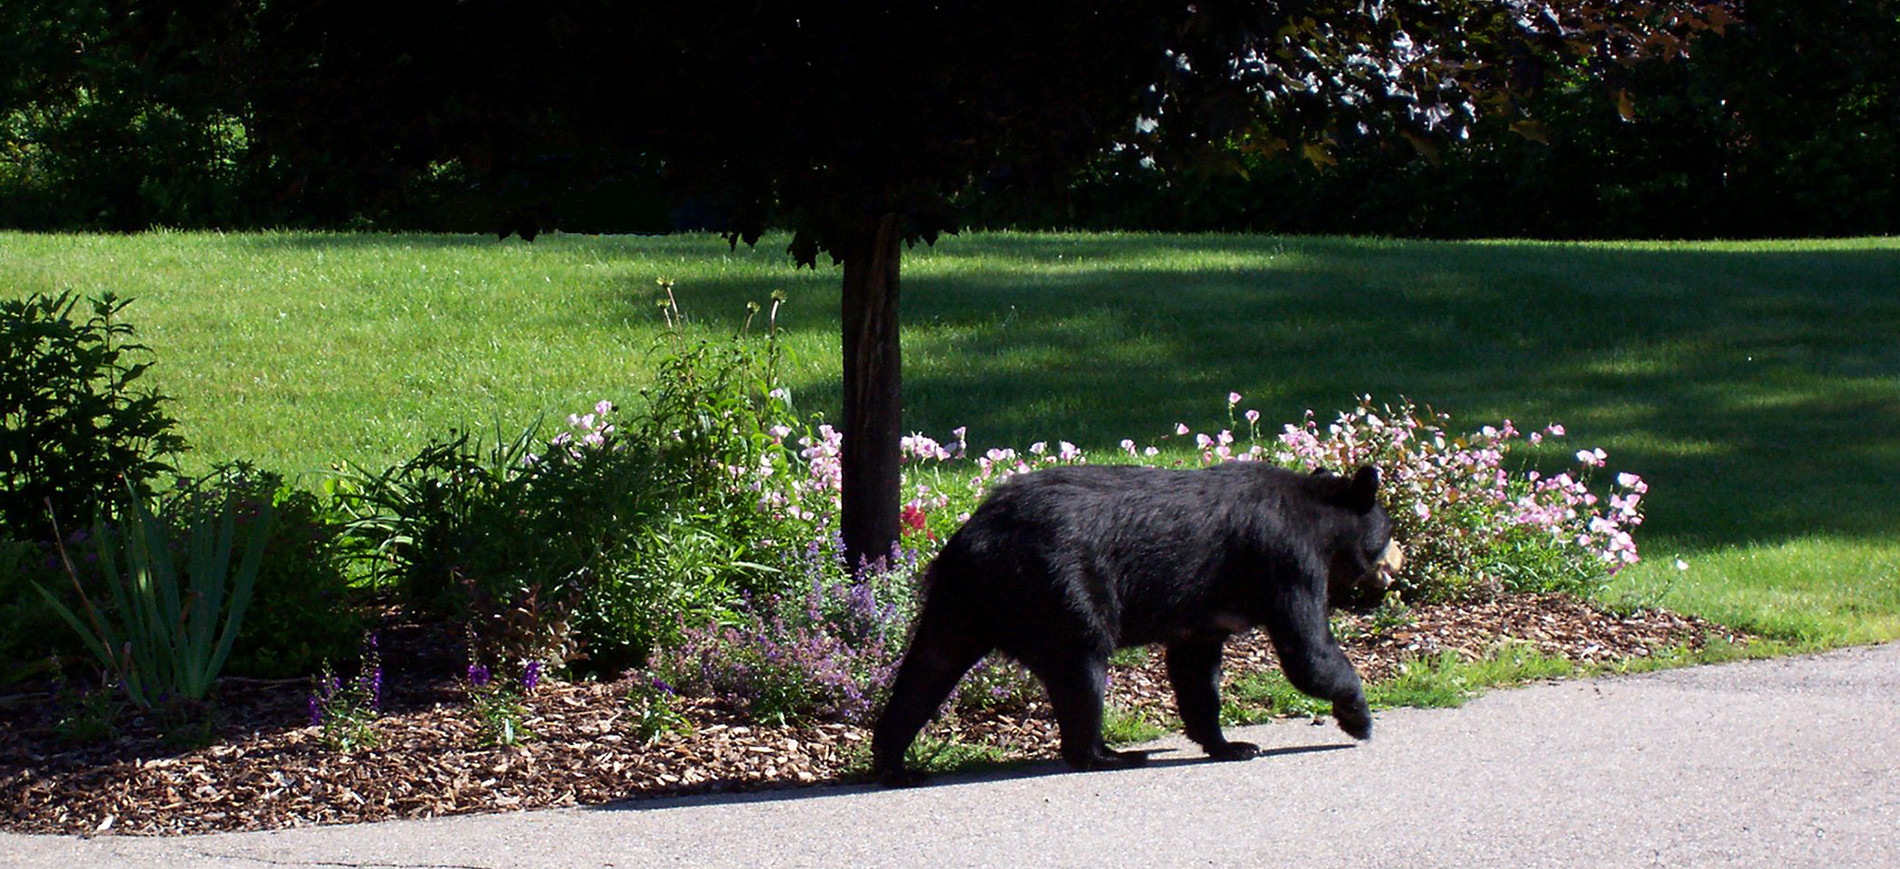 Black bear walking on driveway with flower garden behind